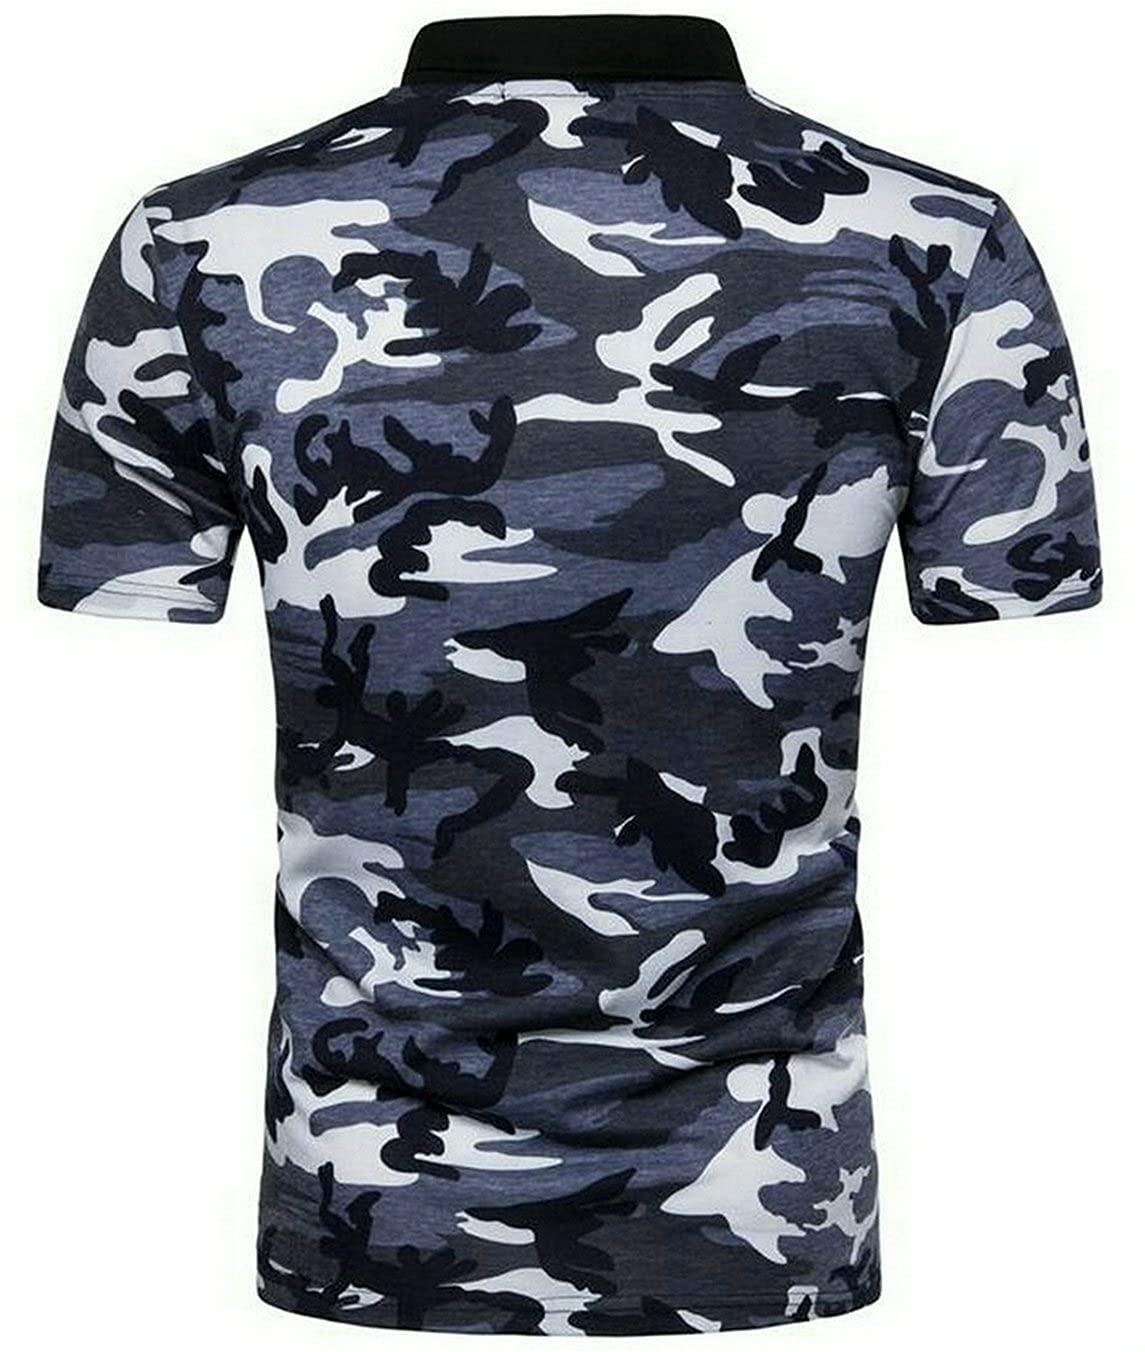 YYG-Men Summer Camo Print Short Sleeve Polo Shirt Blosue Top